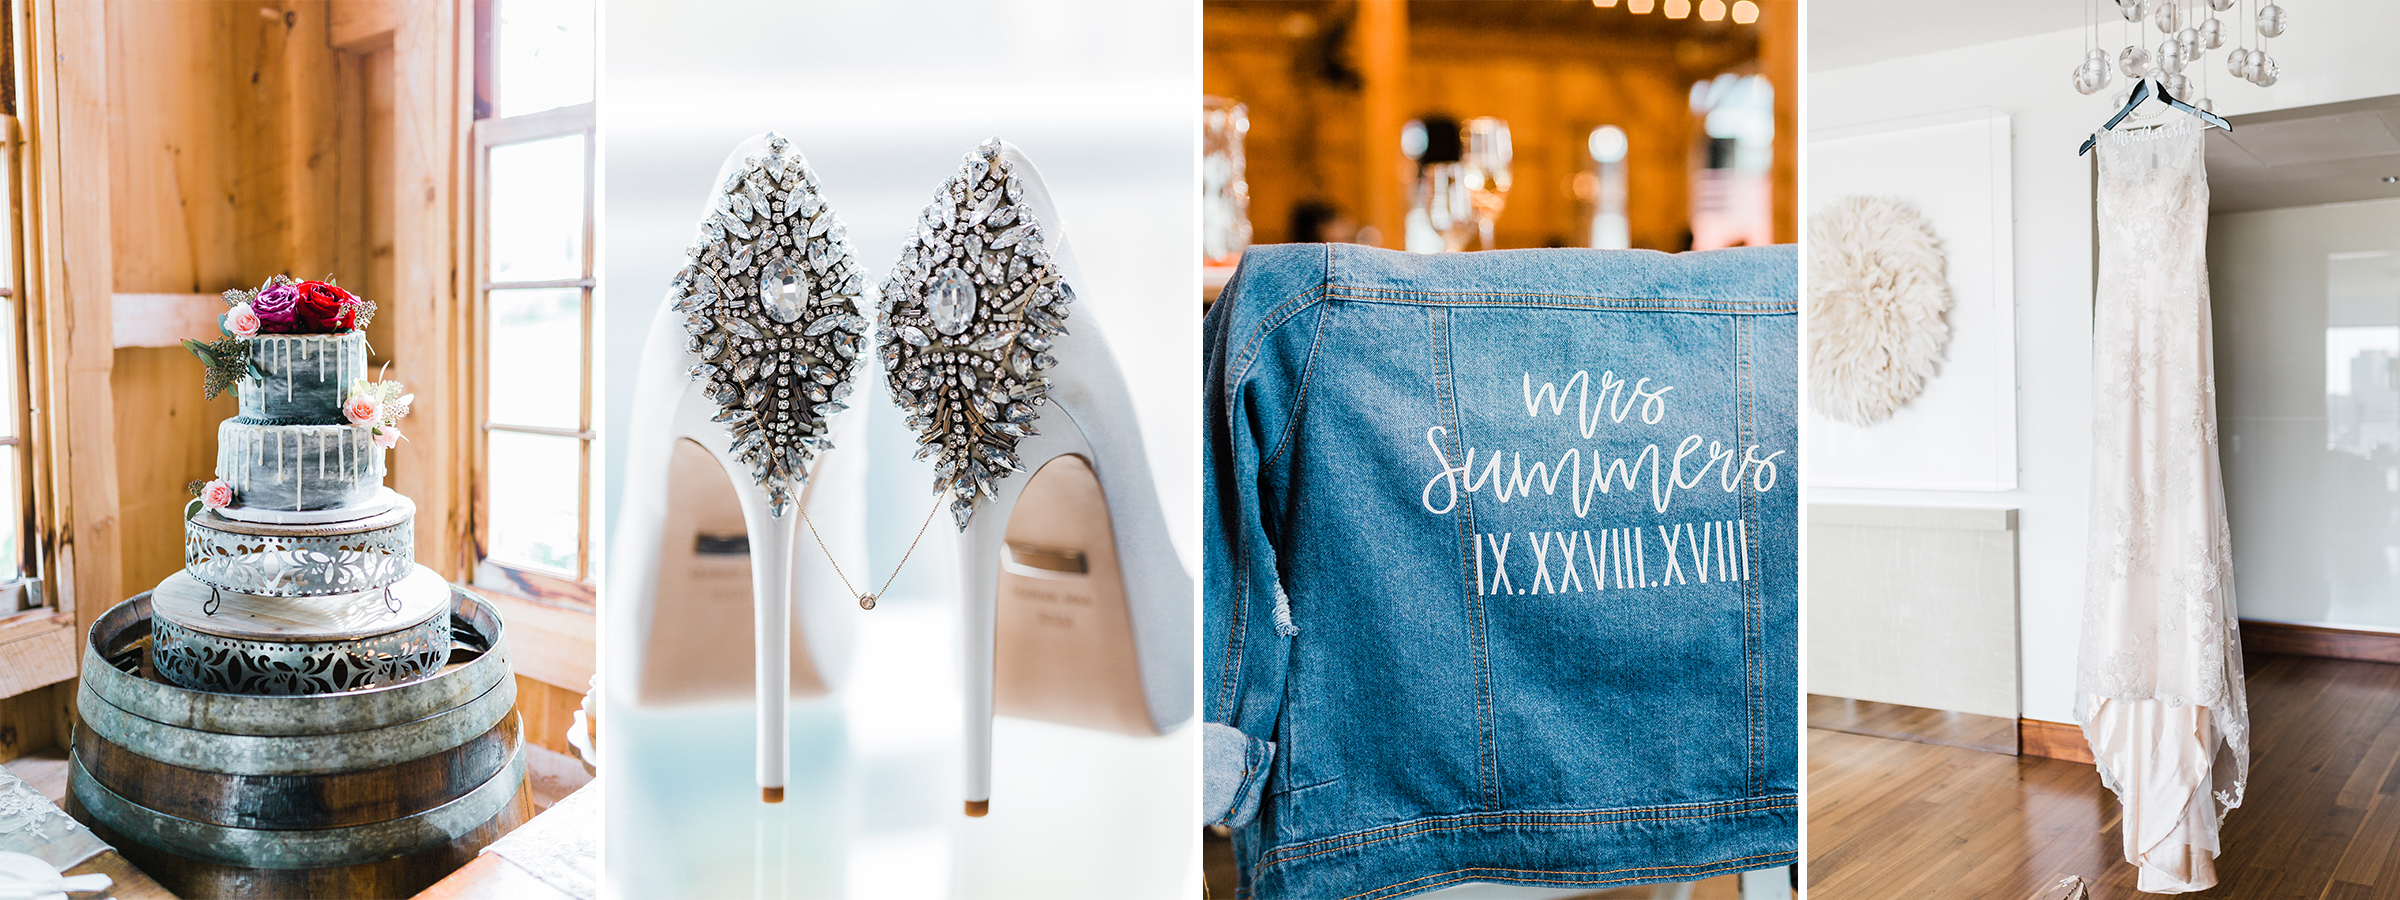 Maryland Wedding Photographer - wedding details - bride shoes - wedding cake inspo - bridal jean jacket